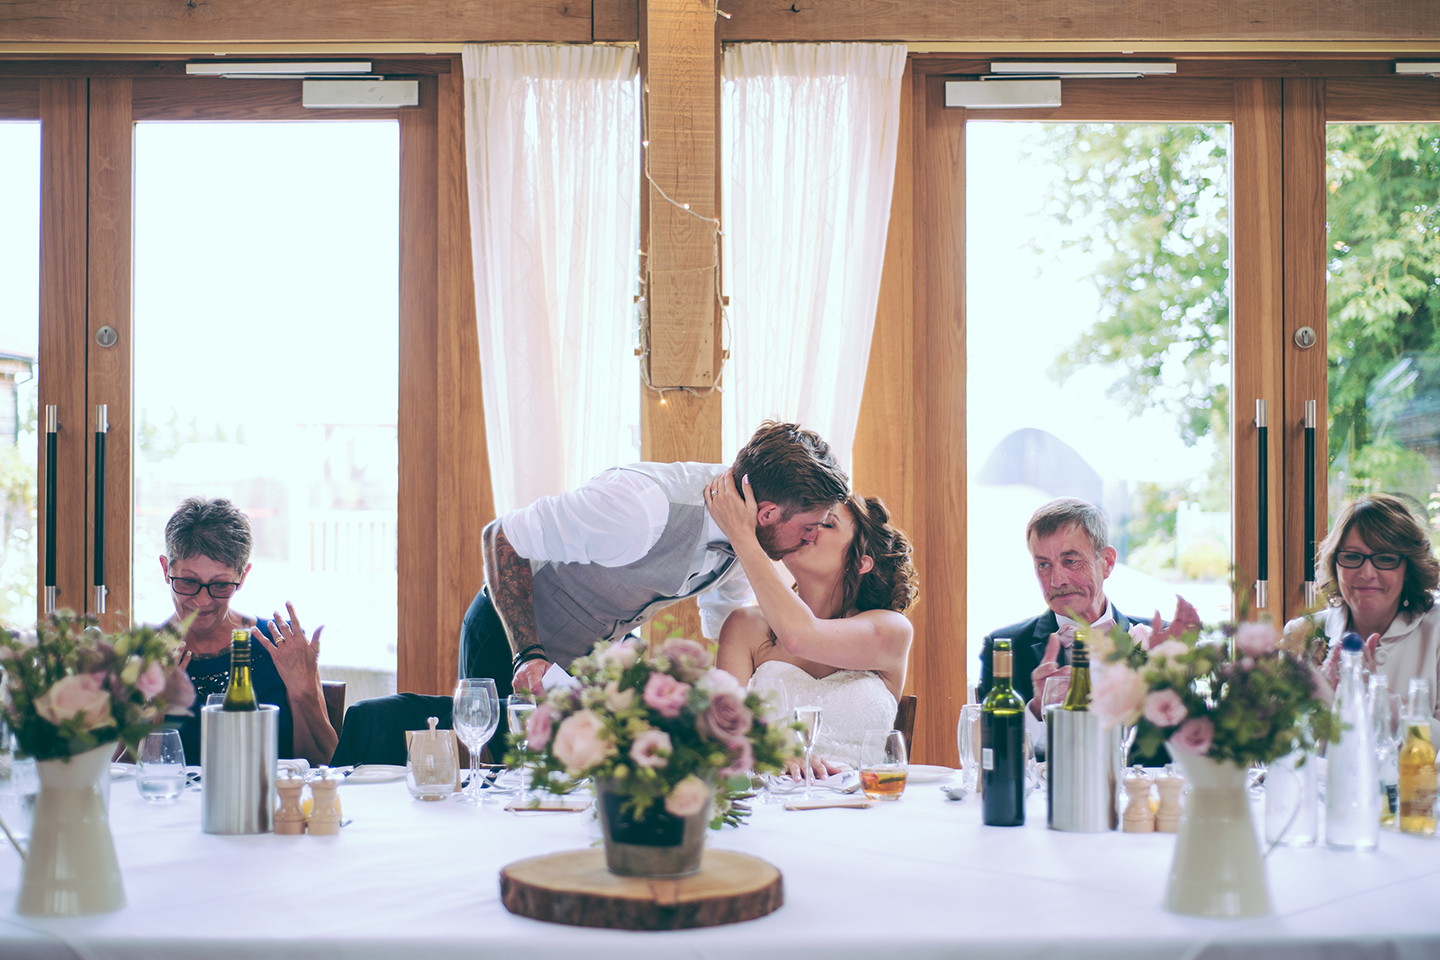 The newlyweds share a kiss during the wedding speeches in the Bridge Barn at Bassmead Manor Barns